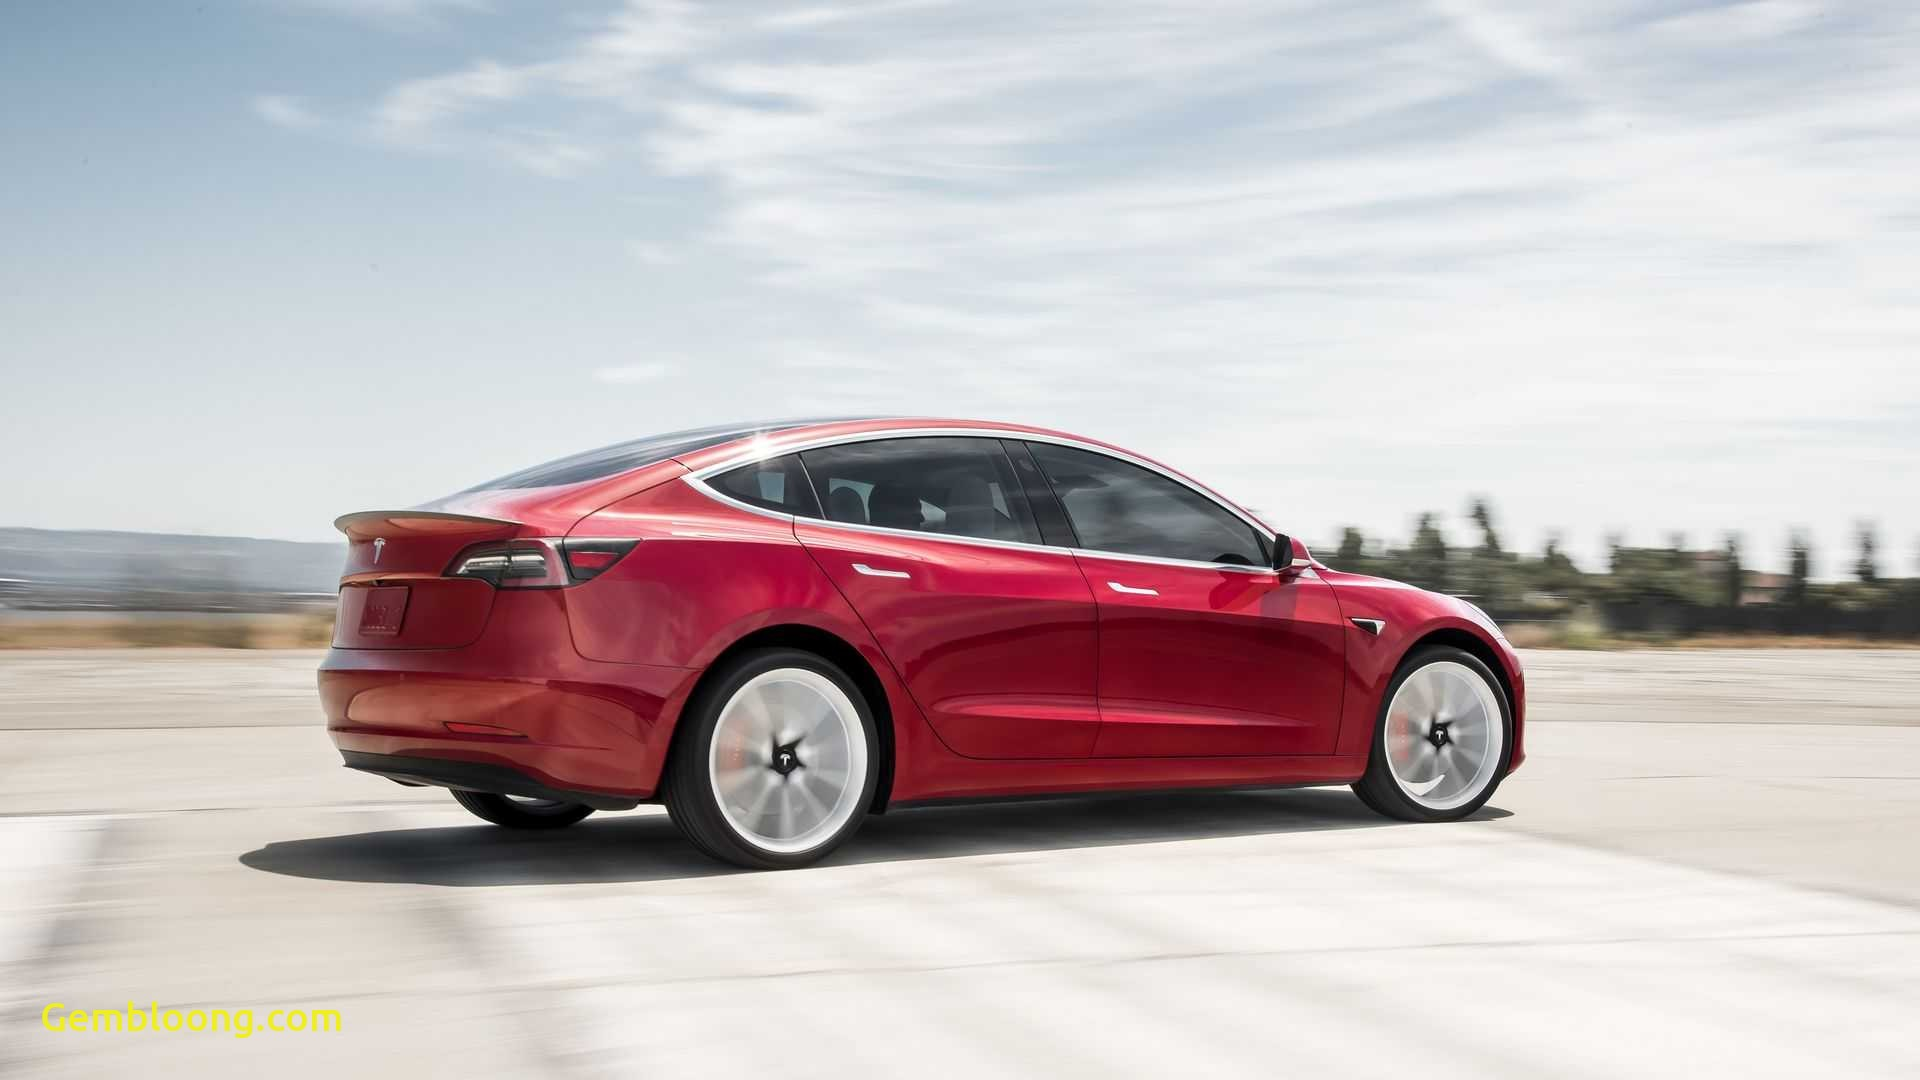 Tesla 0 to 60 Model S Fresh Tesla Model 3 0 to 60 Mph How Quick is It Pared to Other